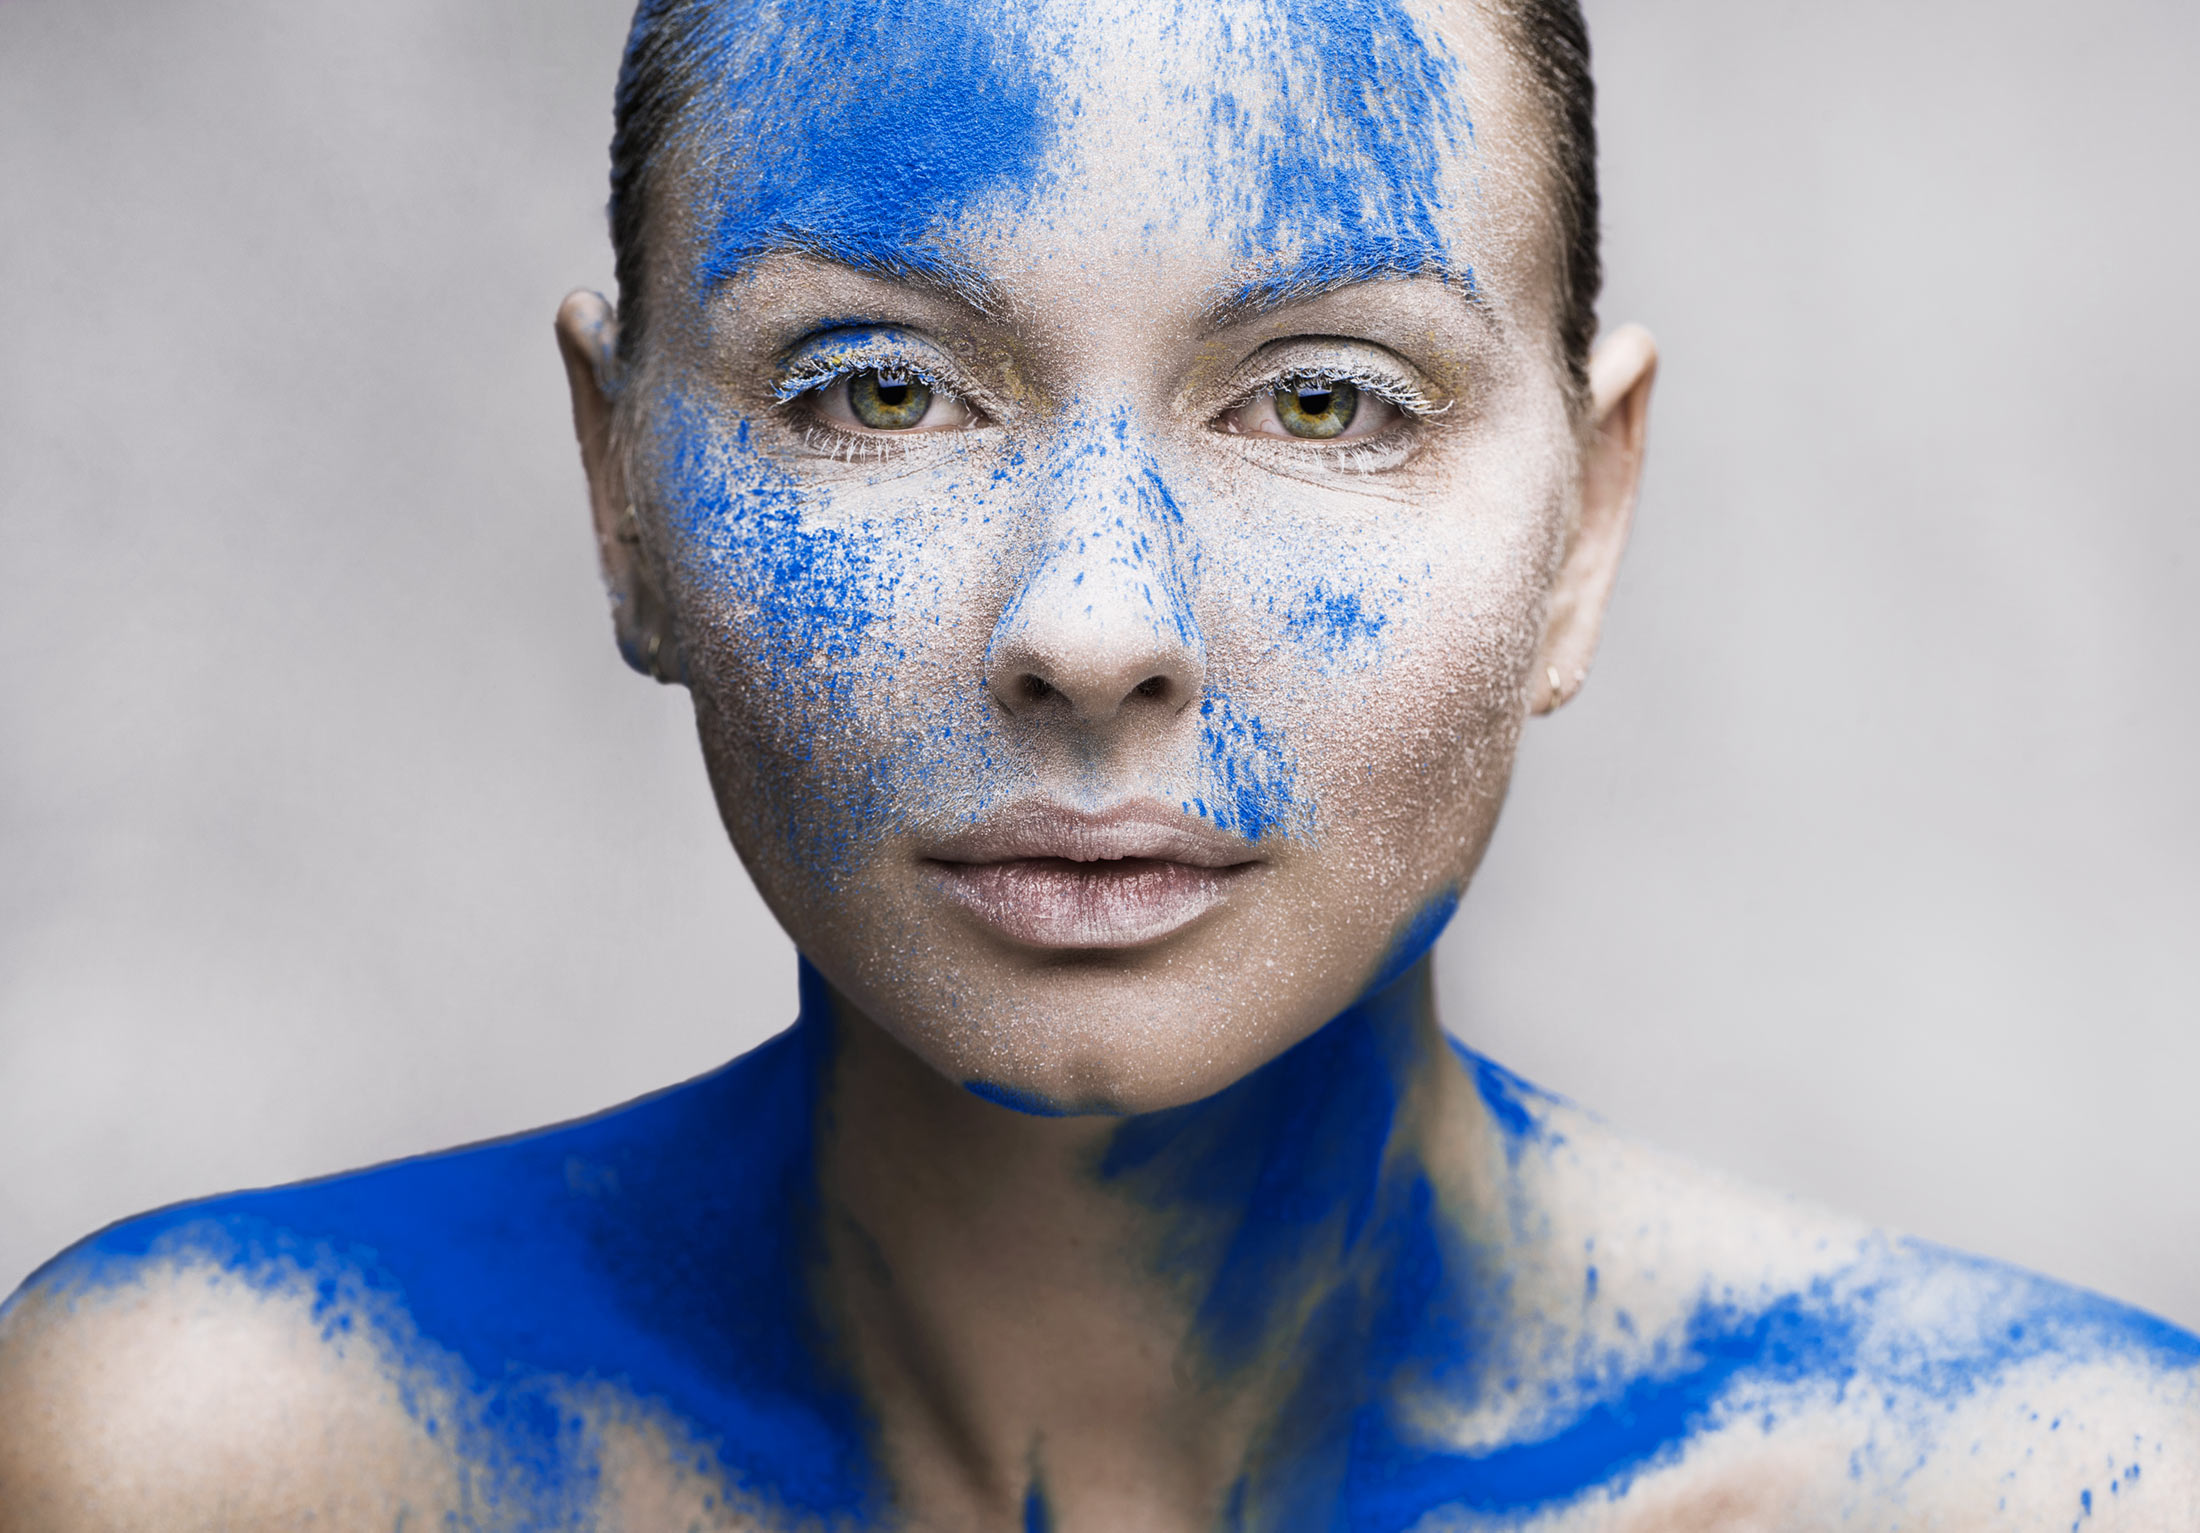 Chad_Riley_Beauty_Blue_Paint